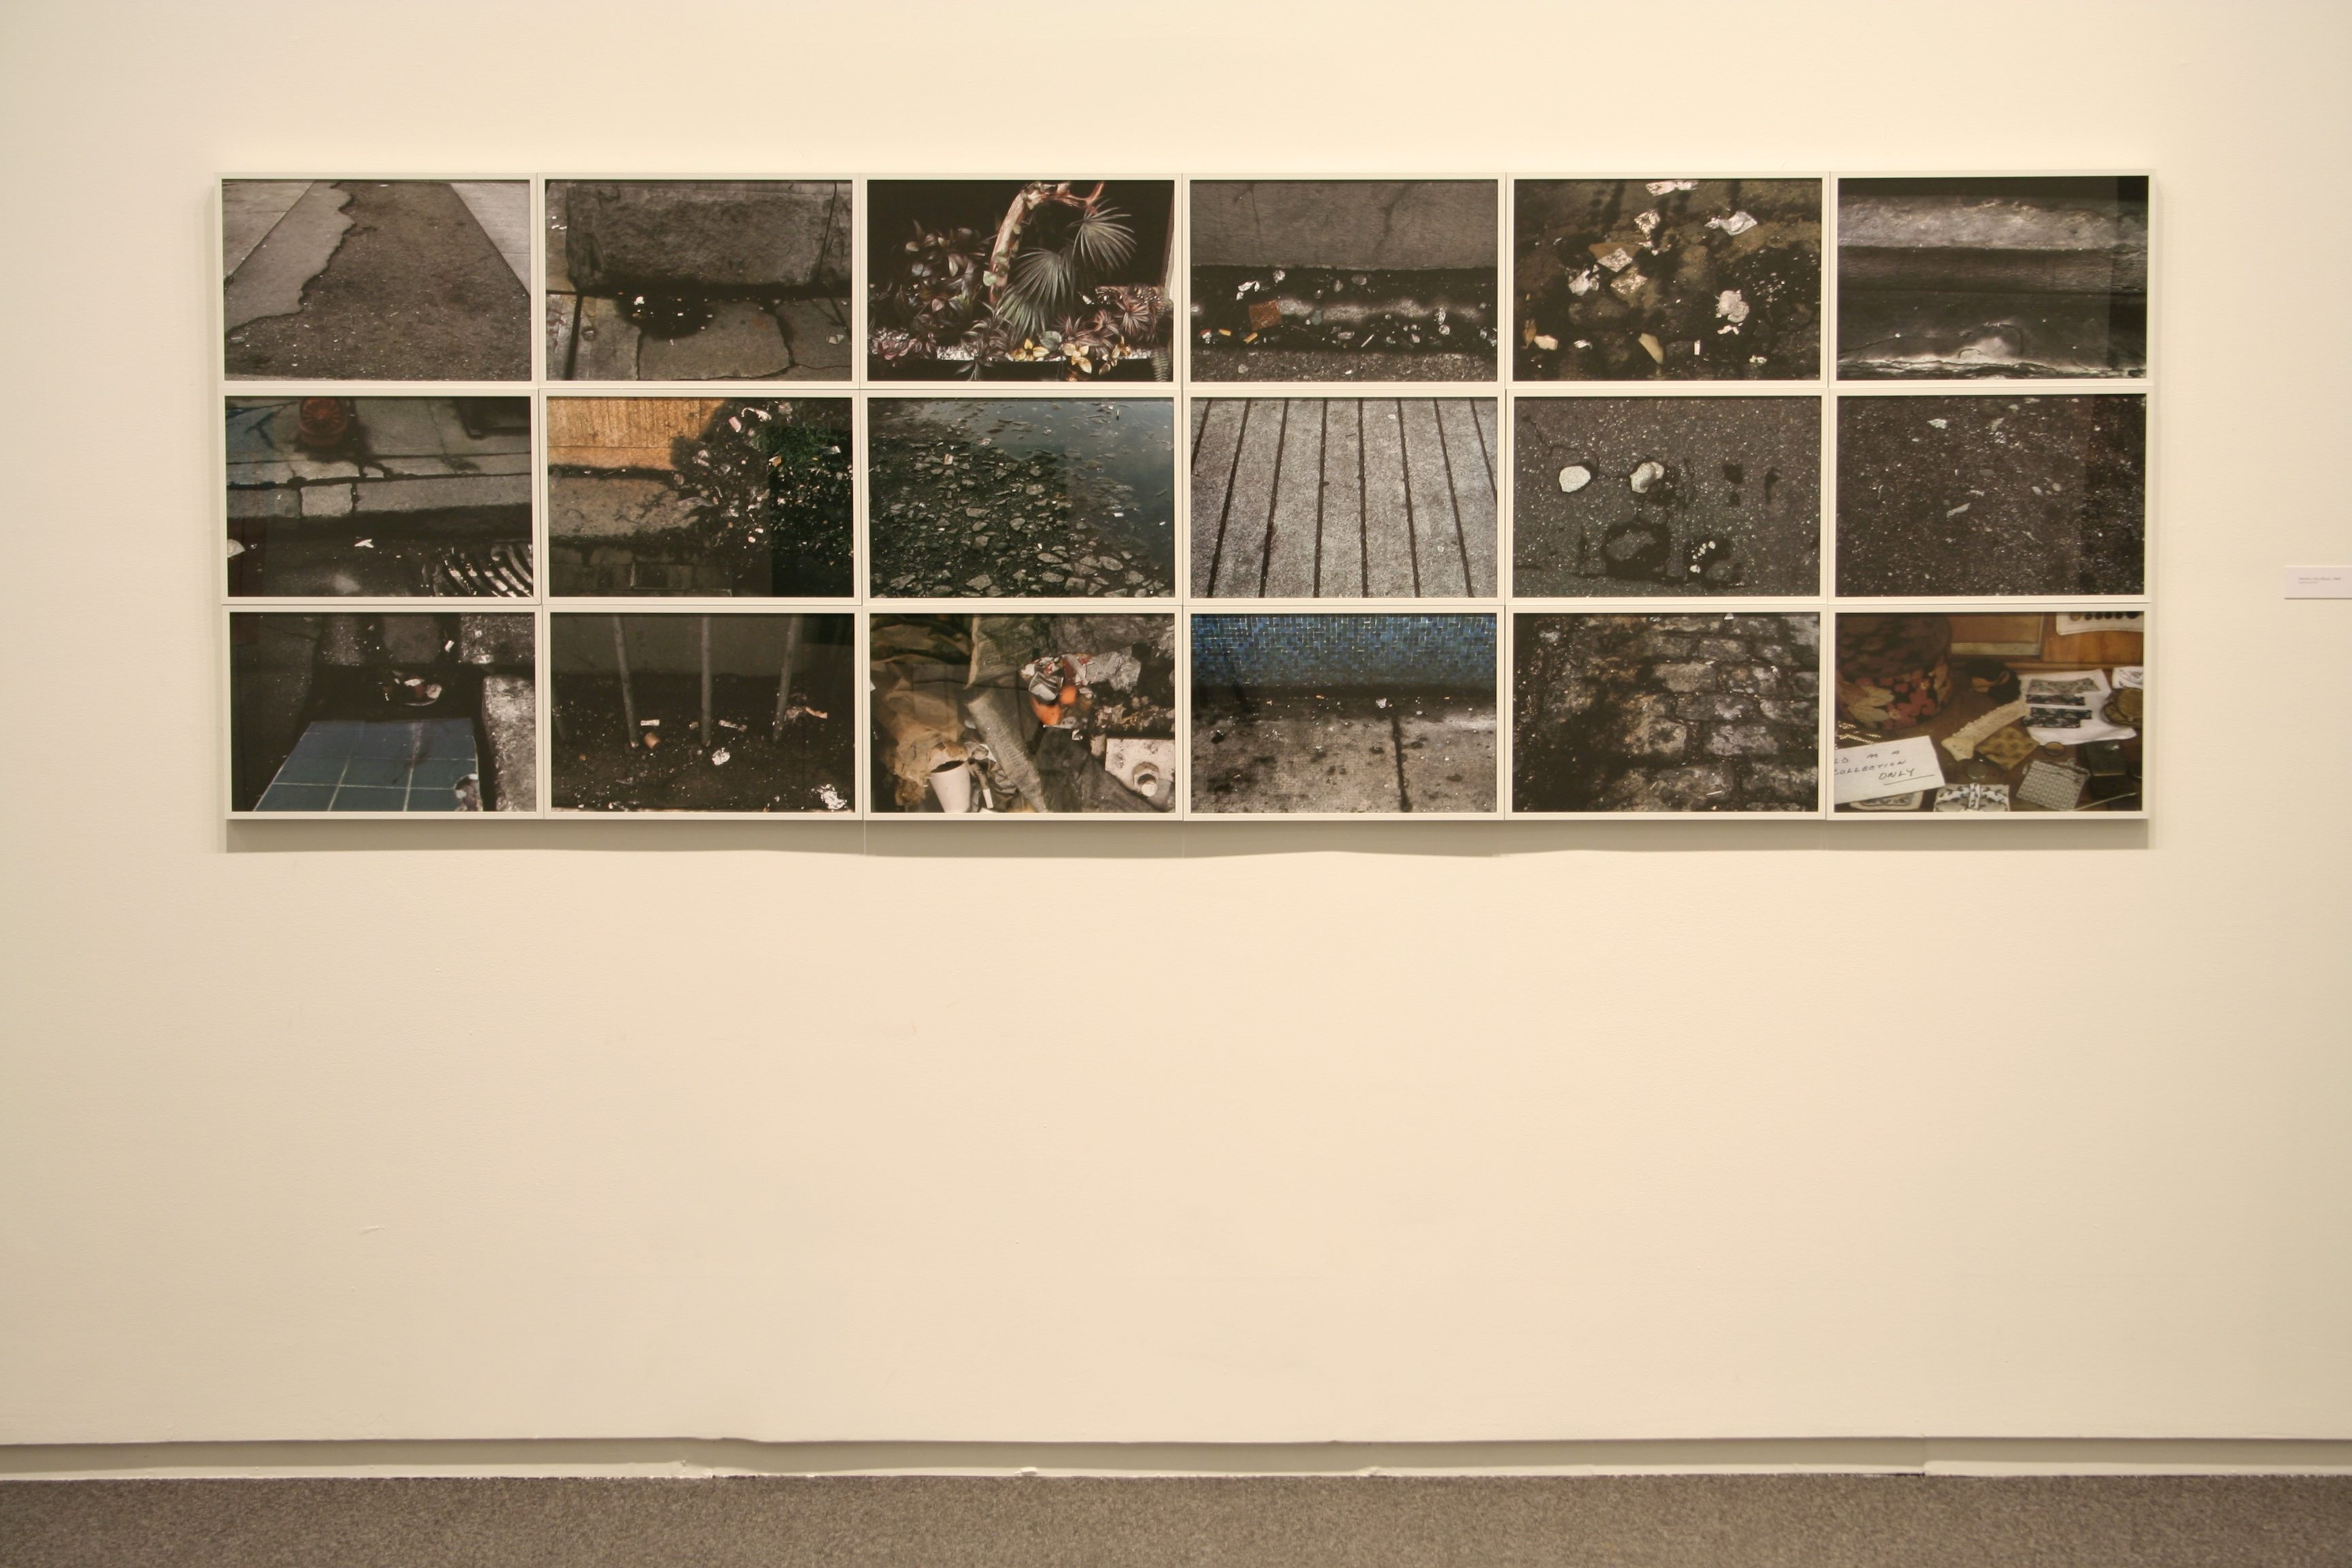 Details of City Block Photos, 1968   Flakey: Early Works of Glenn Lewis 1965 – 1972   Presentation House Gallery 2010